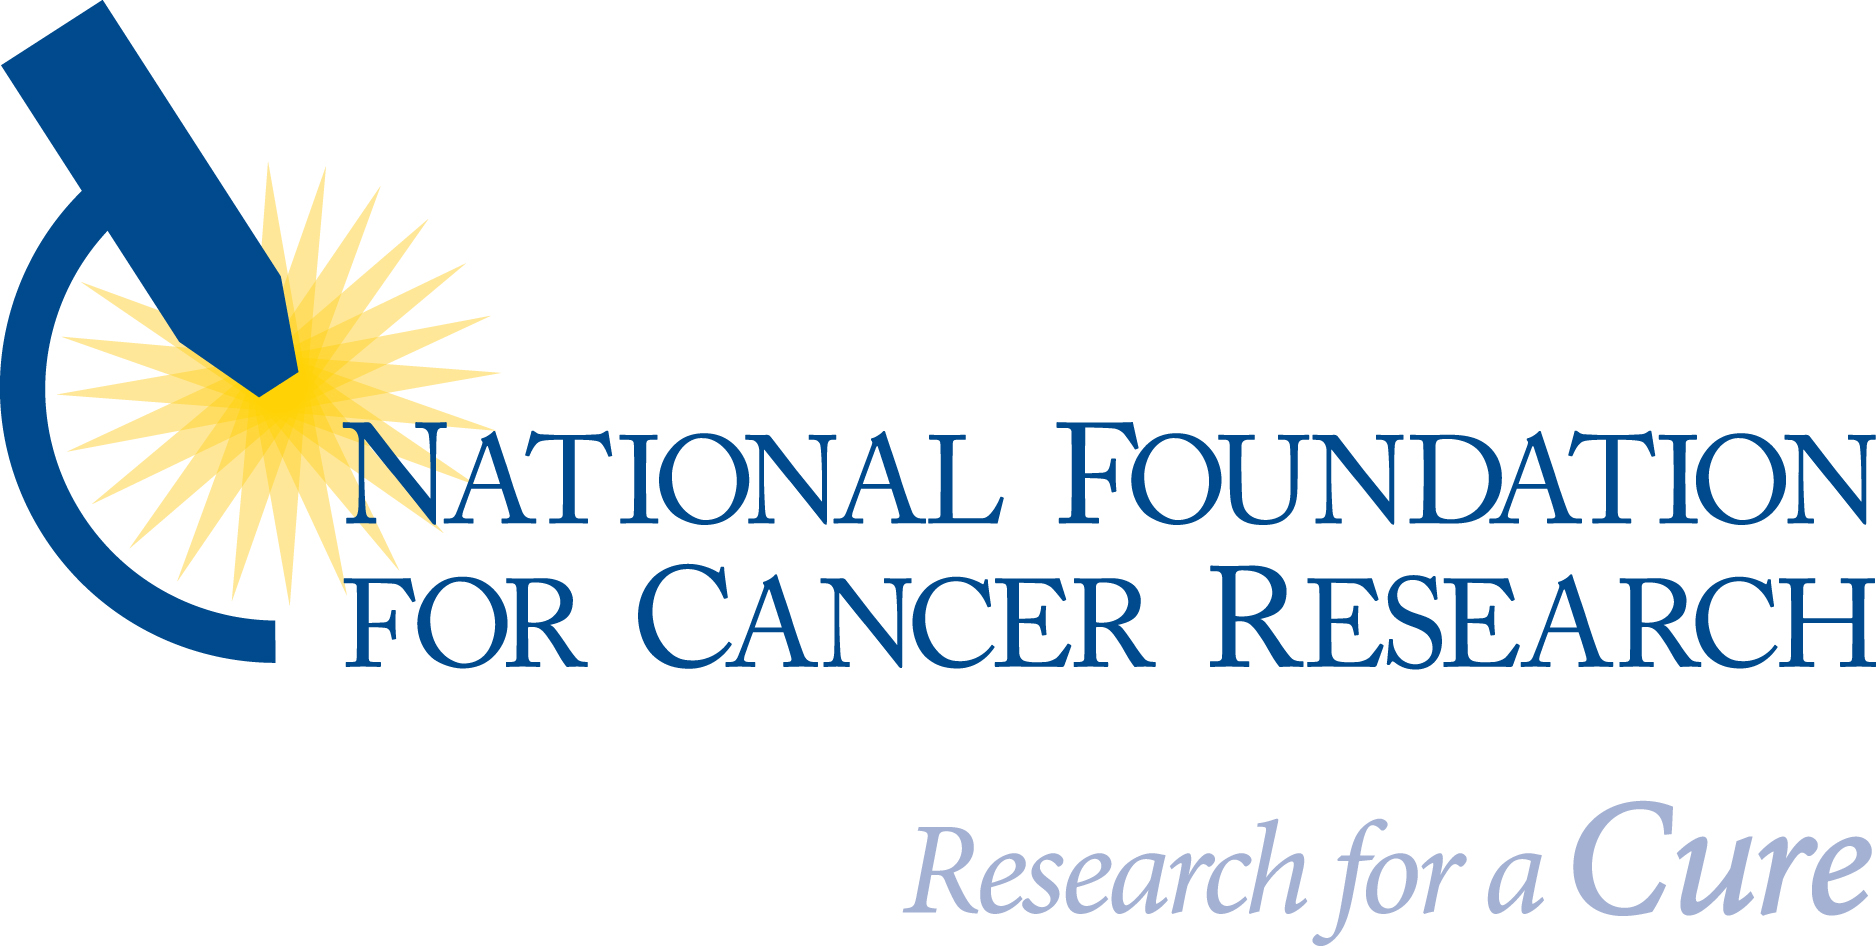 National Foundation for Cancer Research (1).png